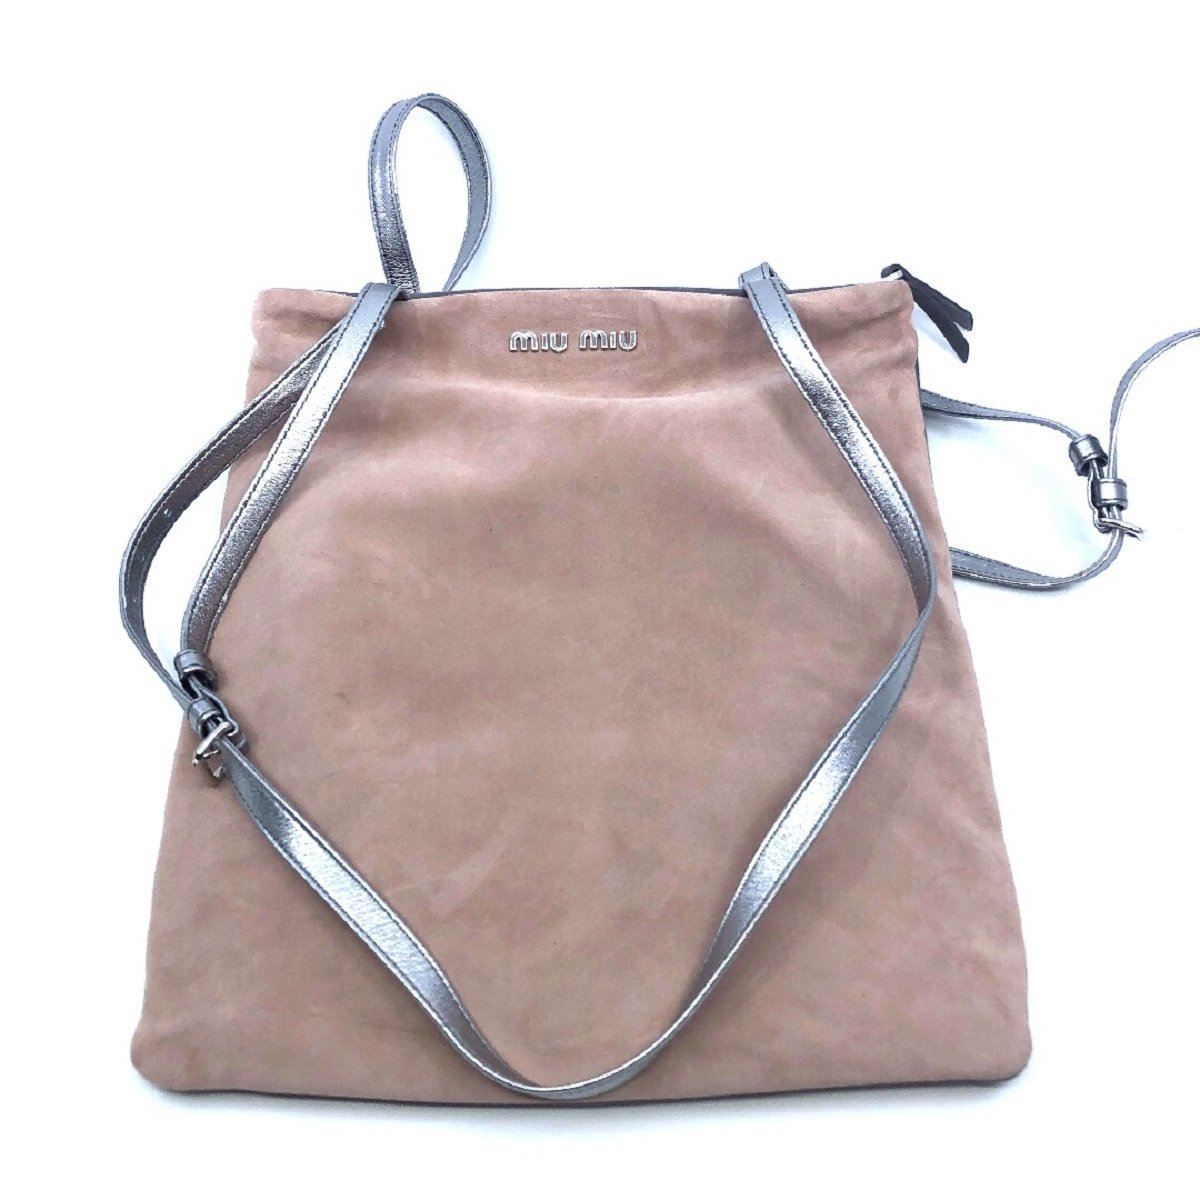 Miu Miu Camoscio Pink and Gray Suede Shoulder Hand Shopping Bag 5BG011